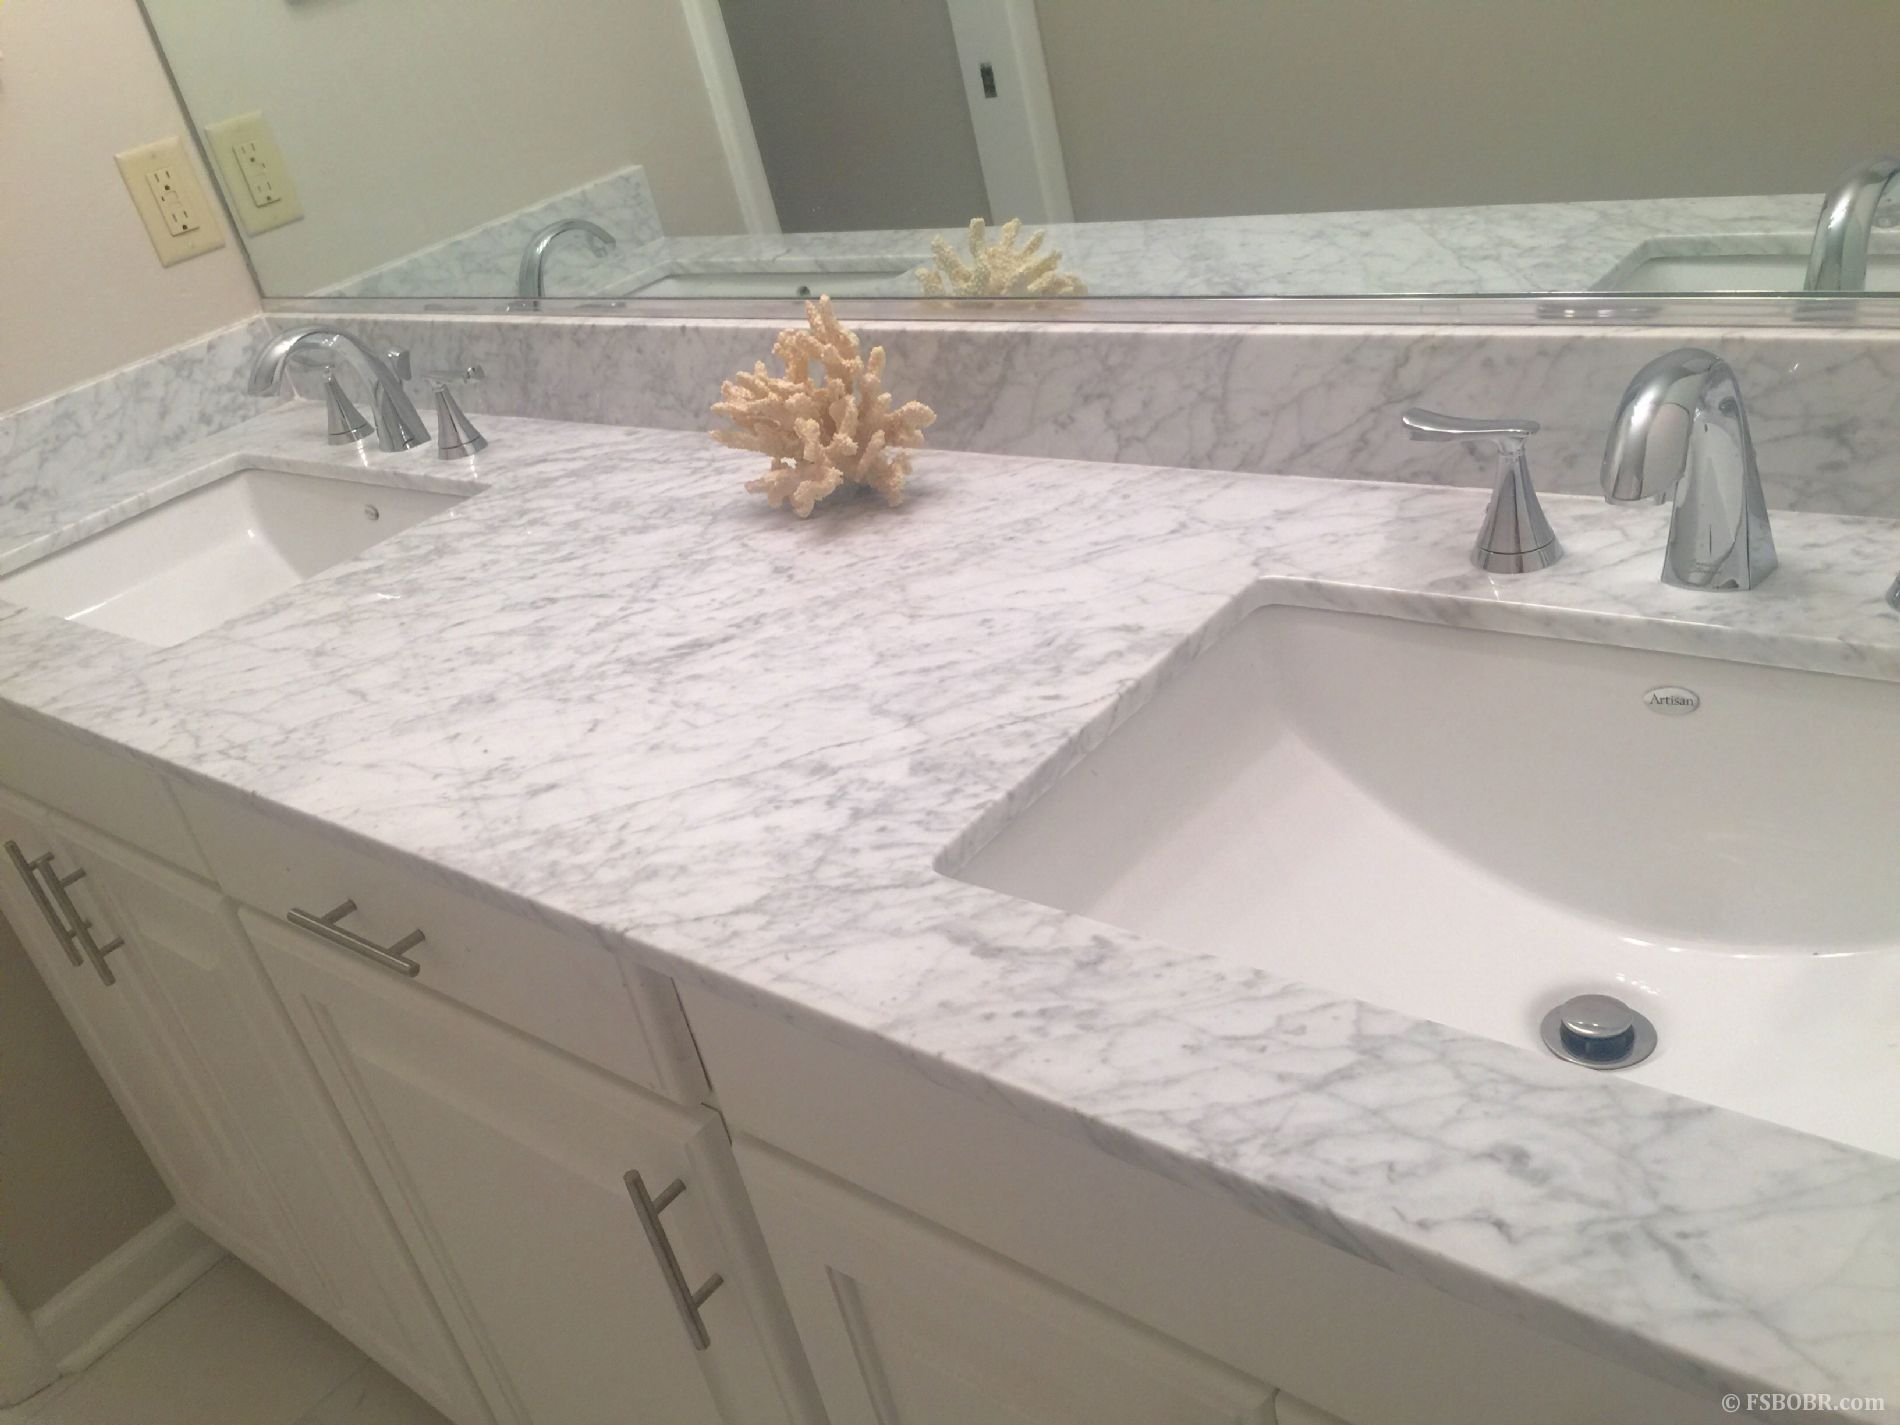 Bathroom Sinks Baton Rouge rare renovated retreat, in the heart of baton rouge on corner lot